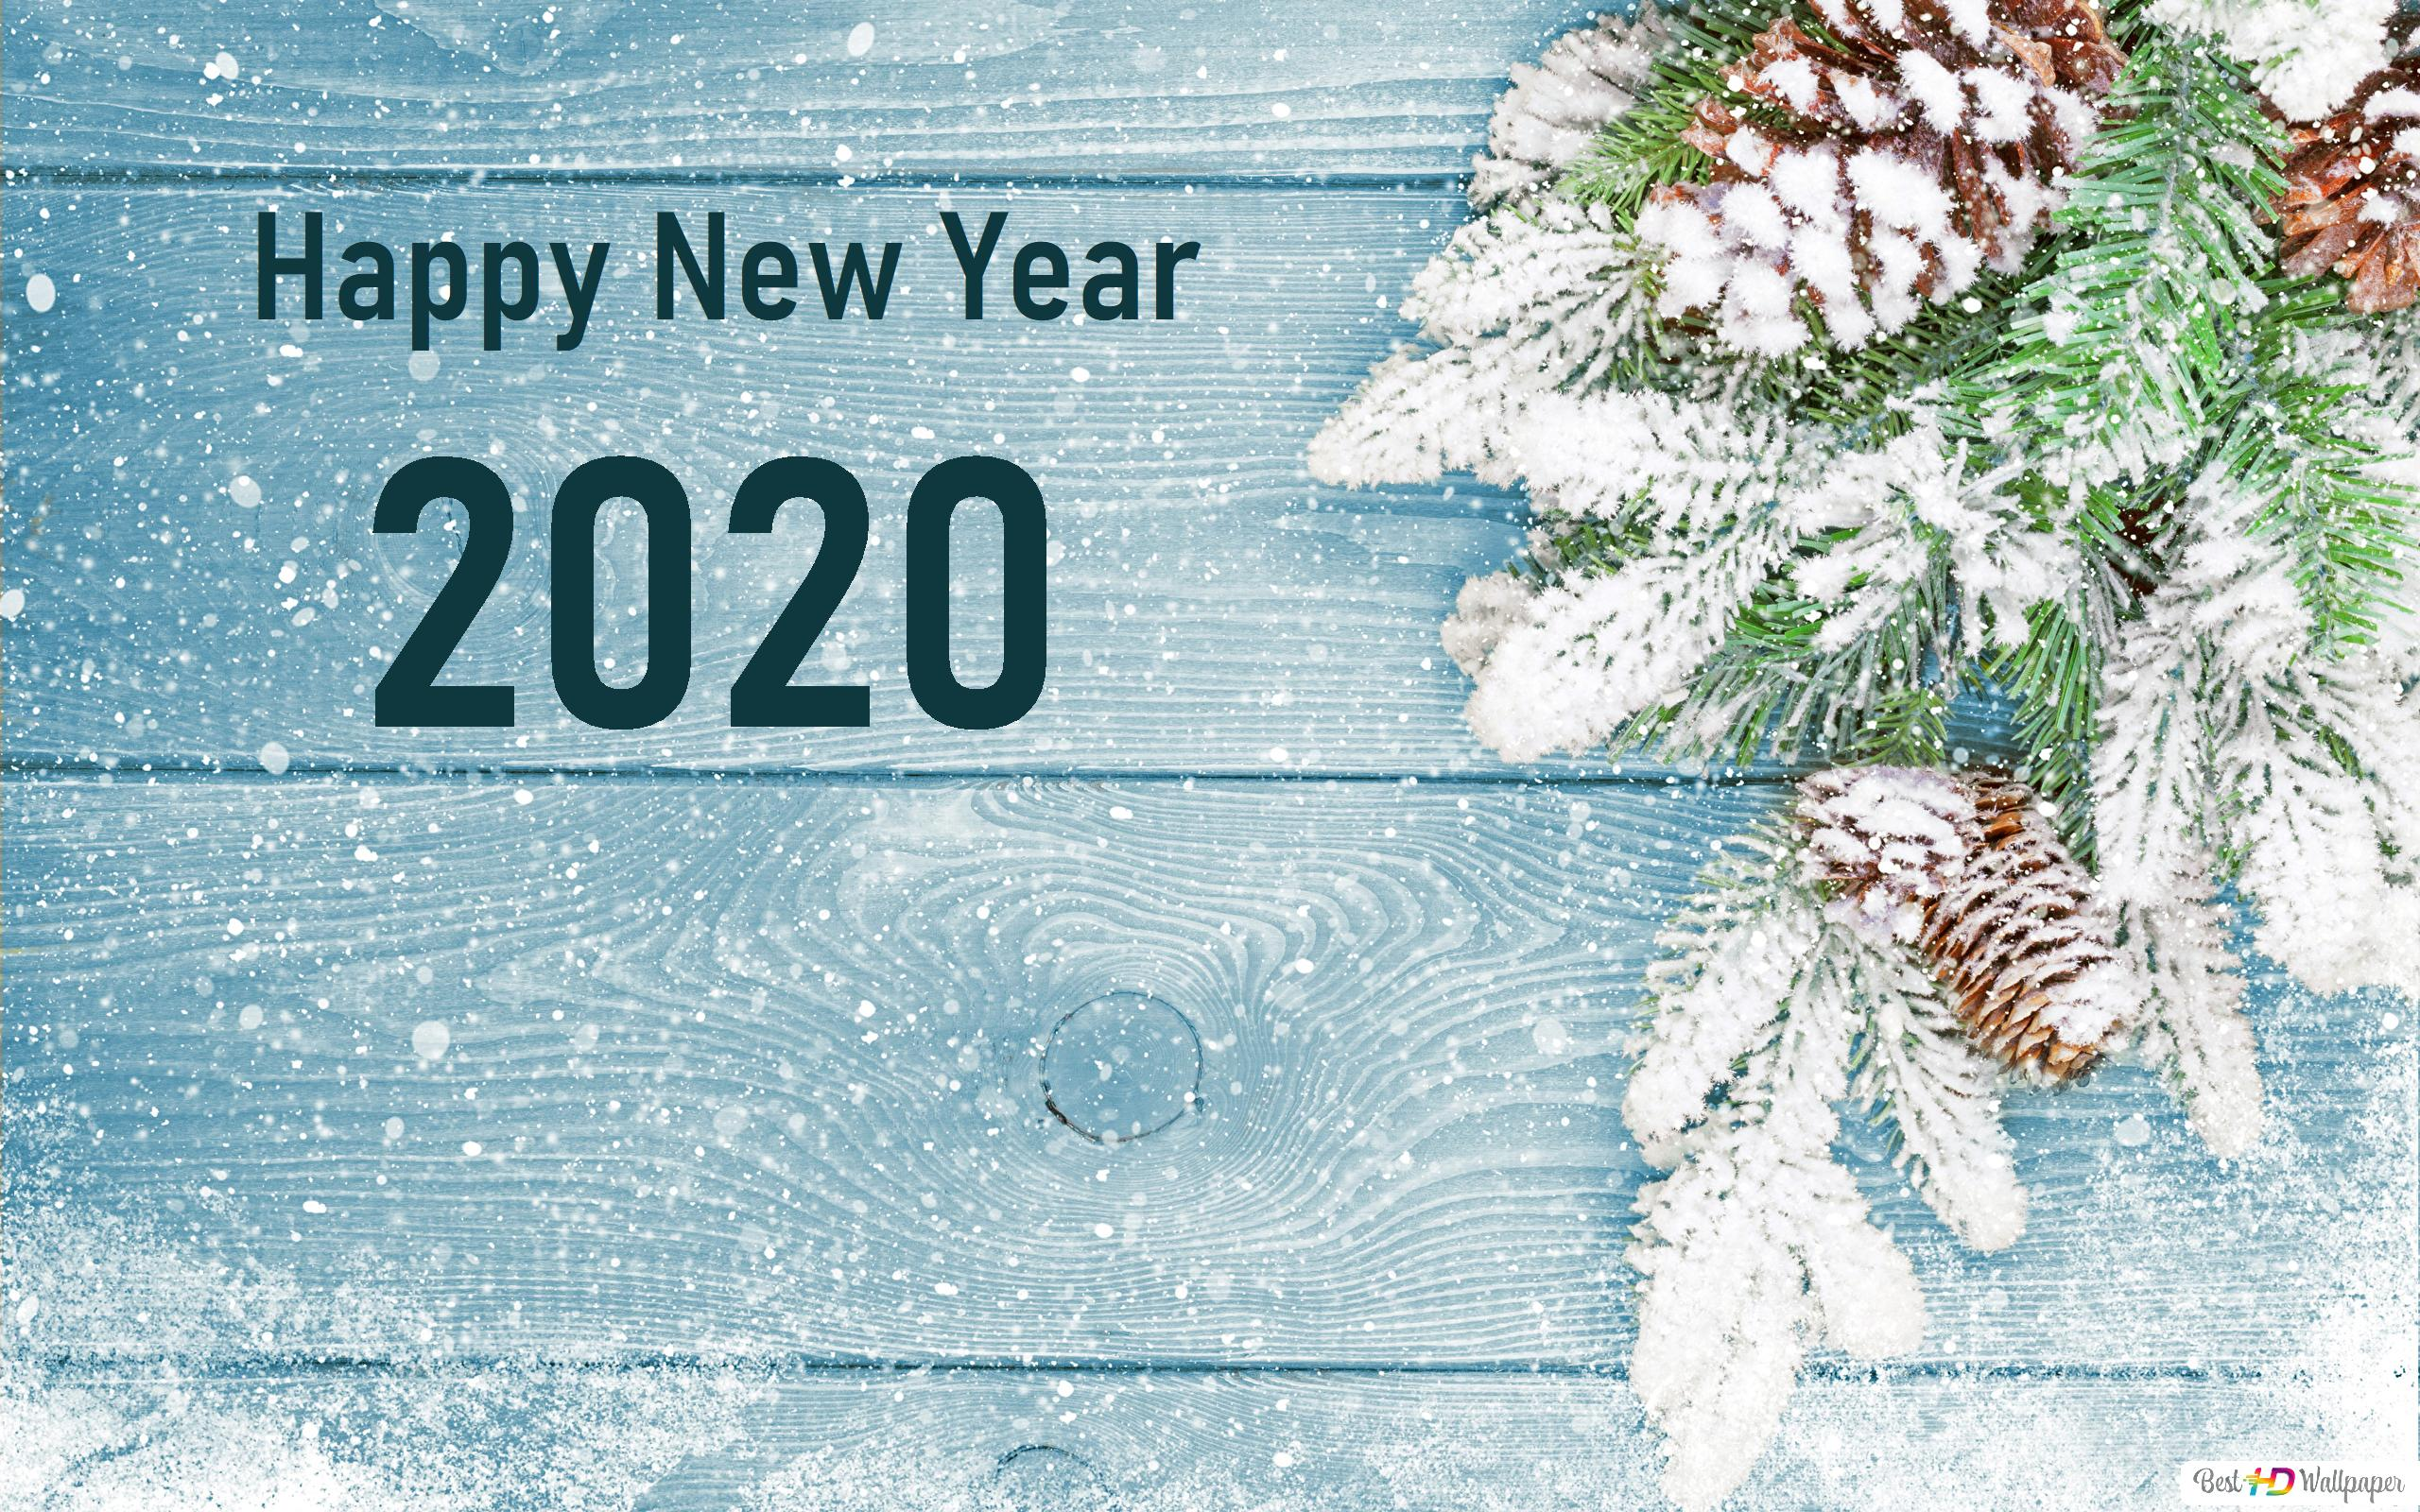 Happy New Year 2020 Snow And Pines Hd Wallpaper Download